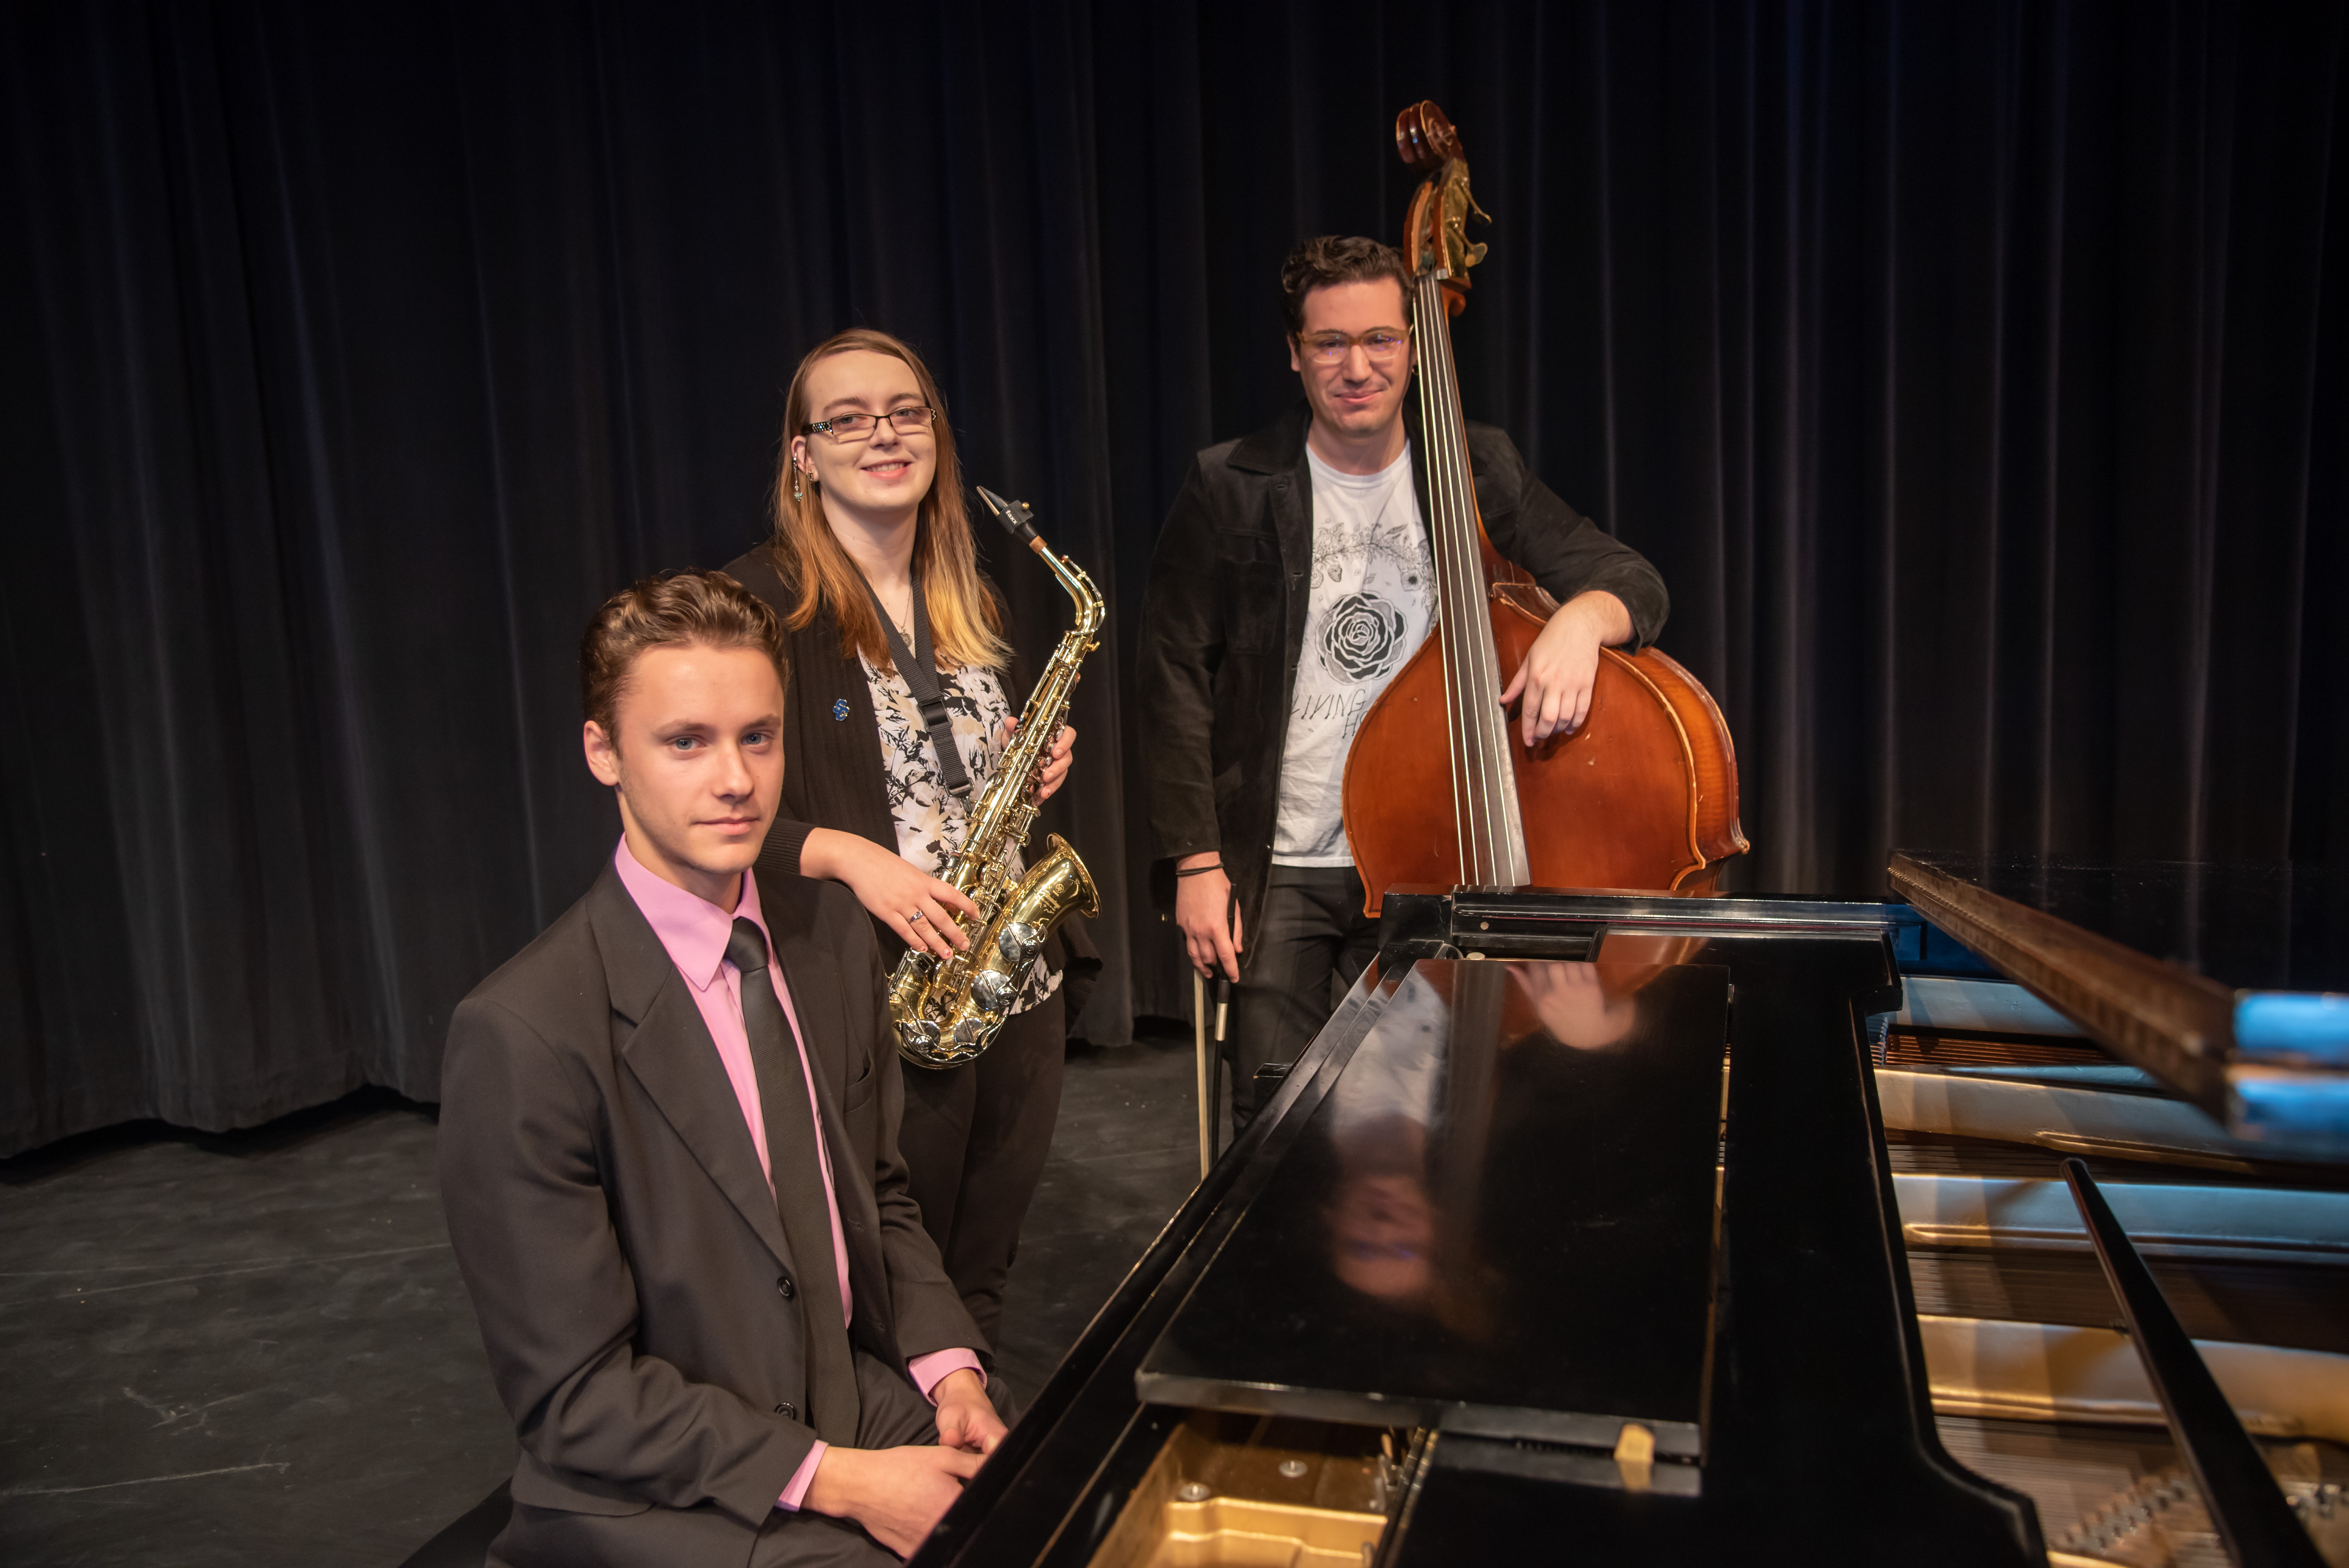 SC4 students come together for special performance to open free Thursday concert Dec. 6